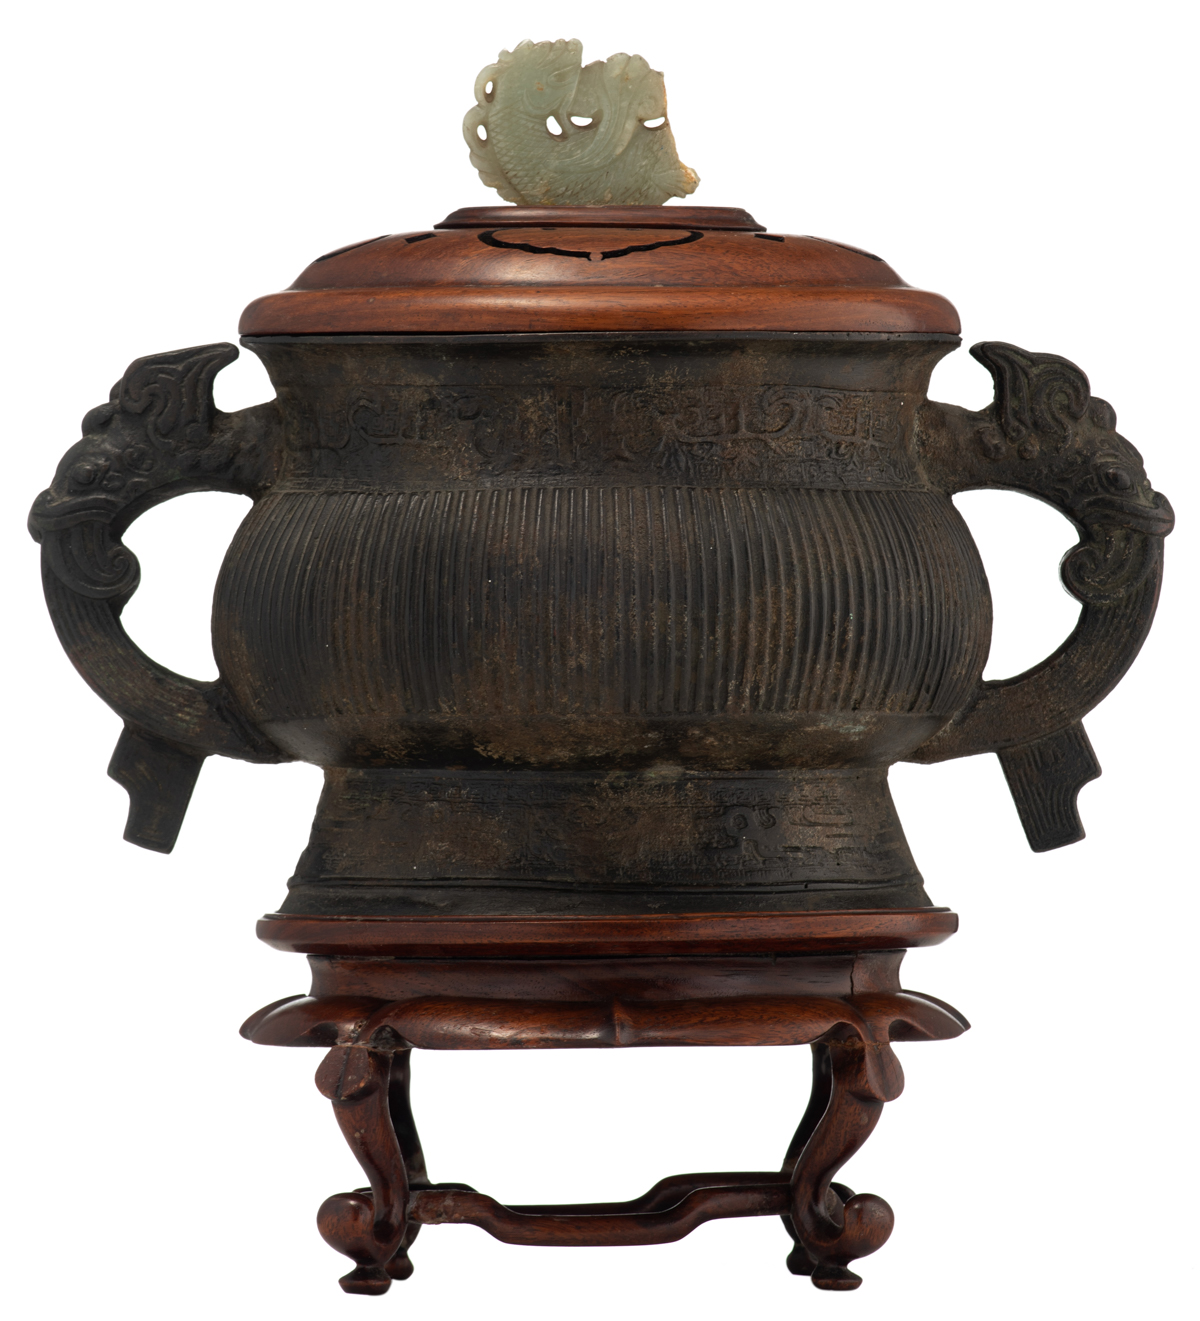 Lot 9 - A Chinese archaic Zhou type bronze gui vessel, the handles dragon shaped, the exotic hardwood